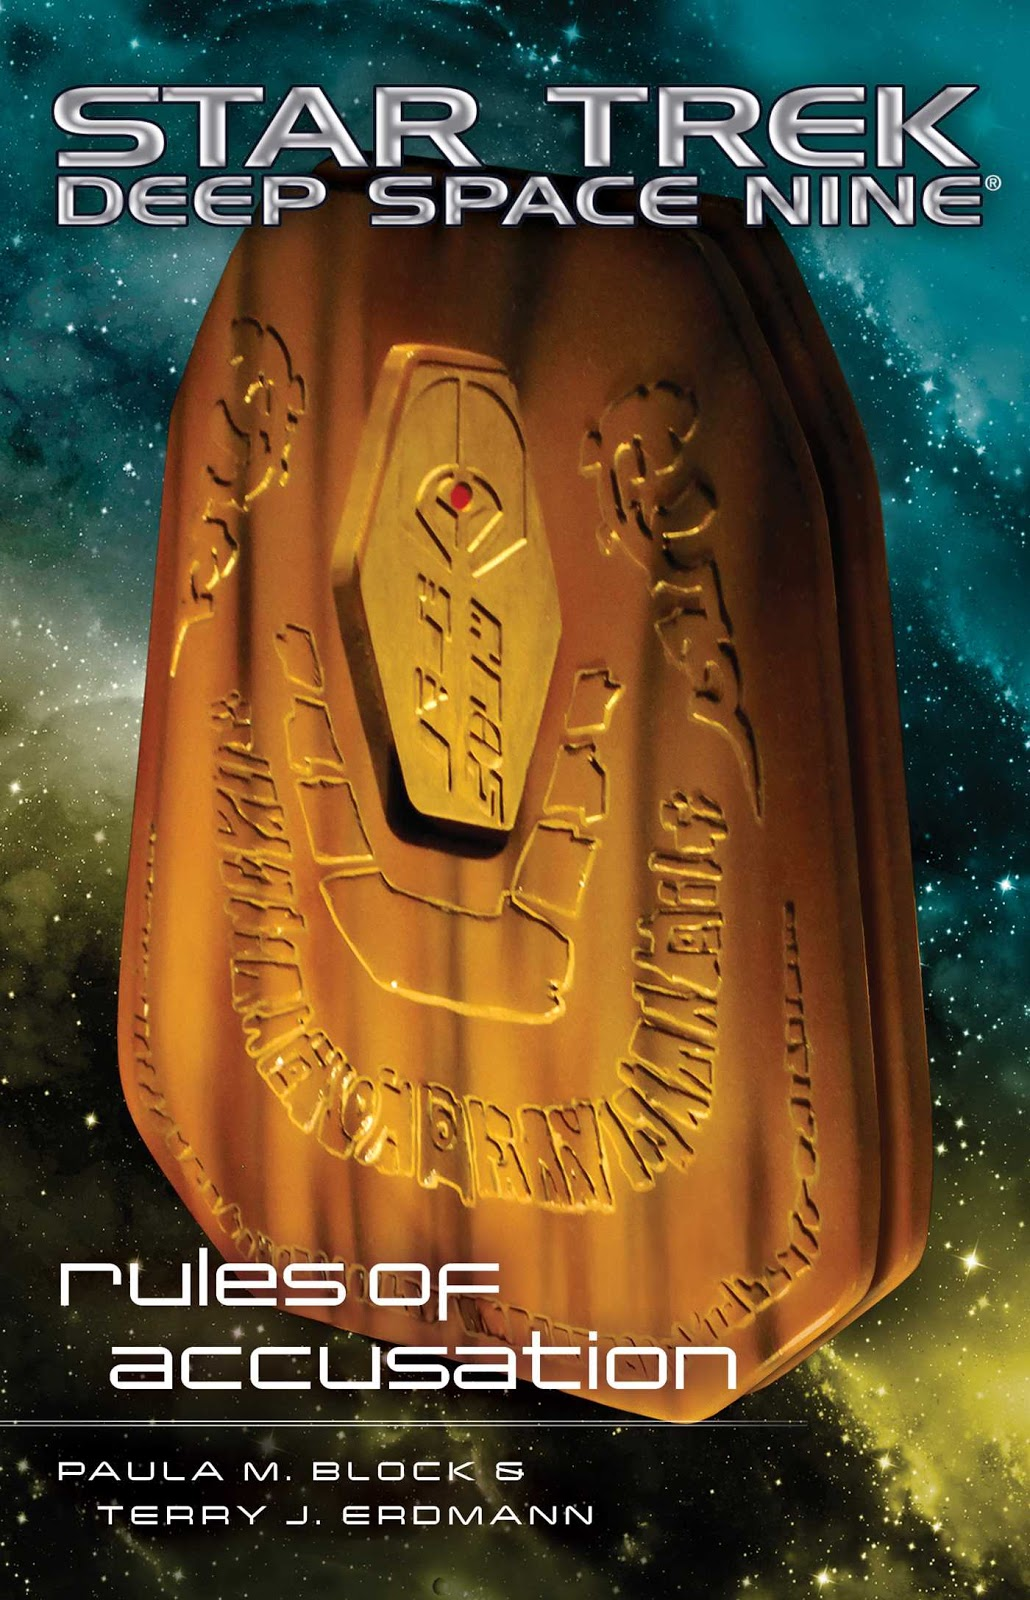 """""""Star Trek: Deep Space Nine: Rules of Accusation"""" Review by Tor.com"""